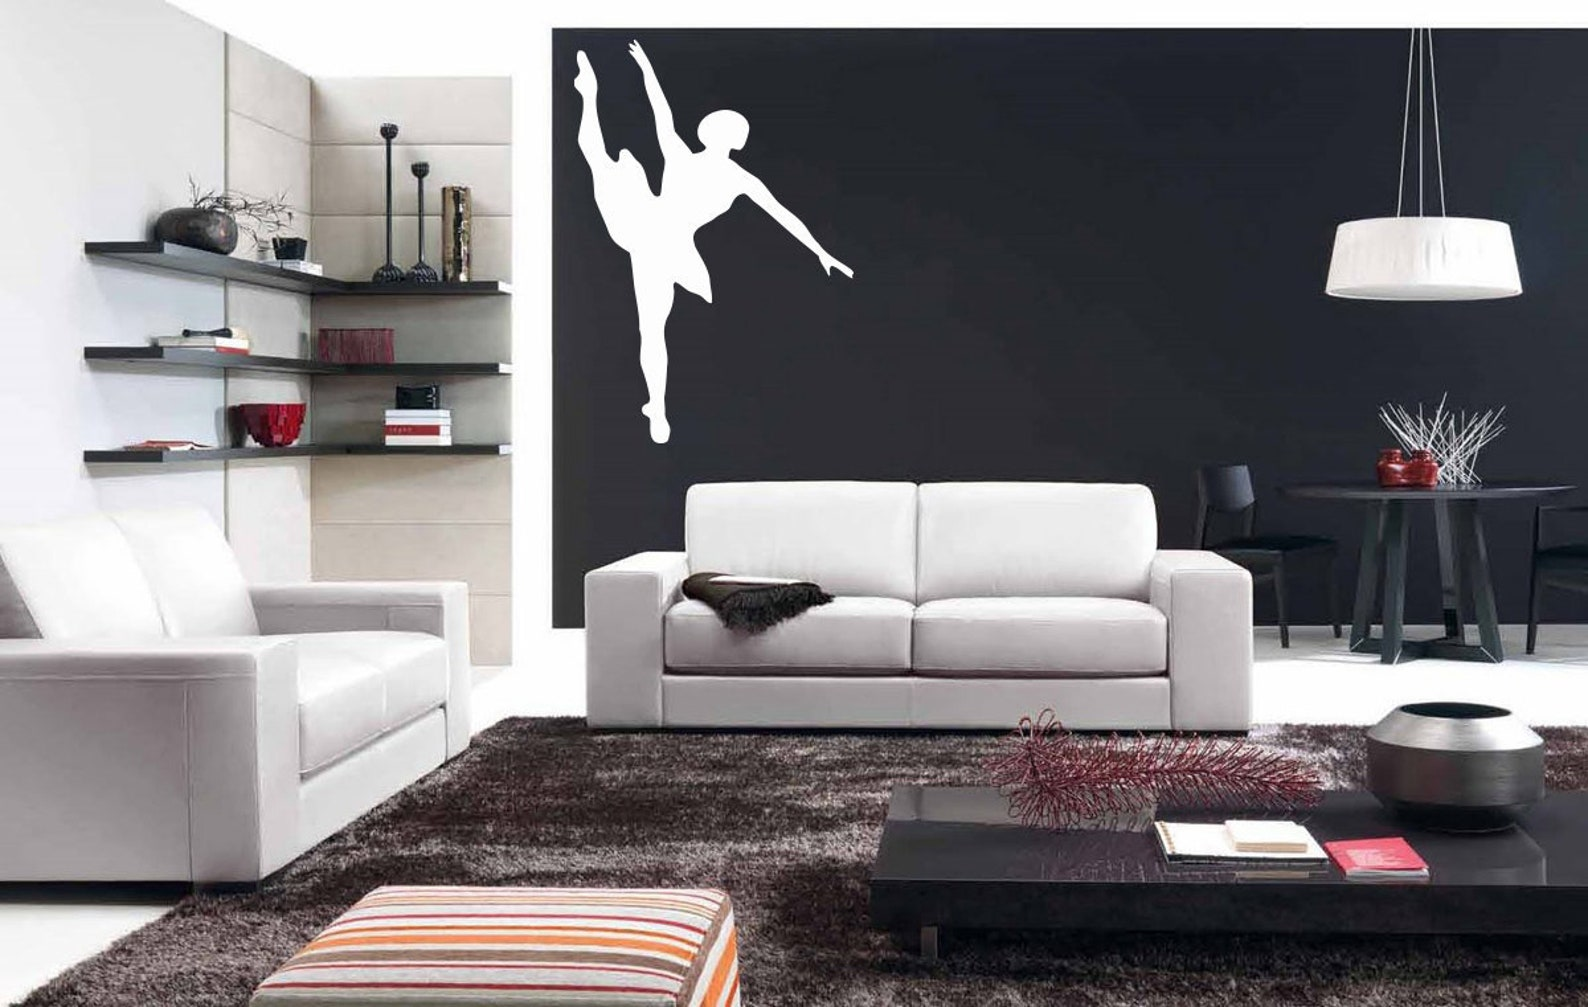 ballet, dance, ballet tutu, pointe shoes, ballet school wall decal window sticker handmade 1546